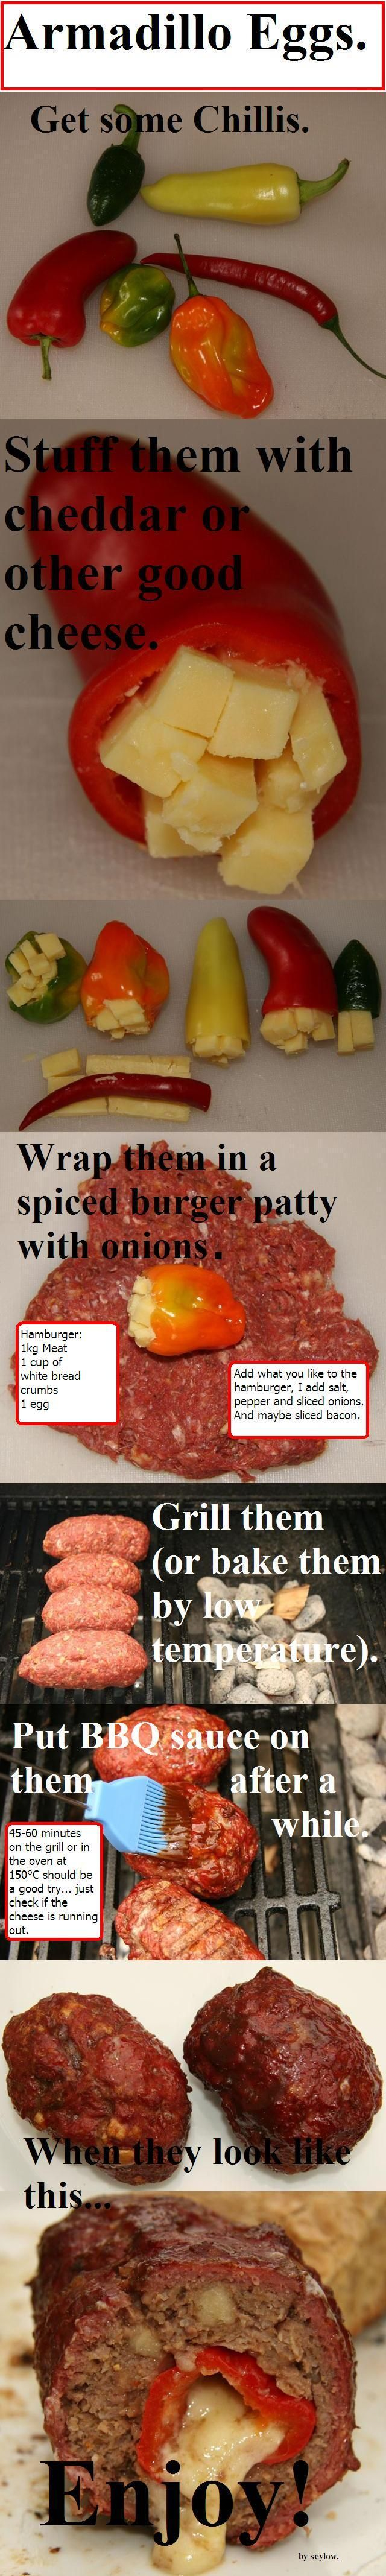 Burger Patty stuffed with a pepper filled with cheese... pics only but the recipe is on the step by step photos